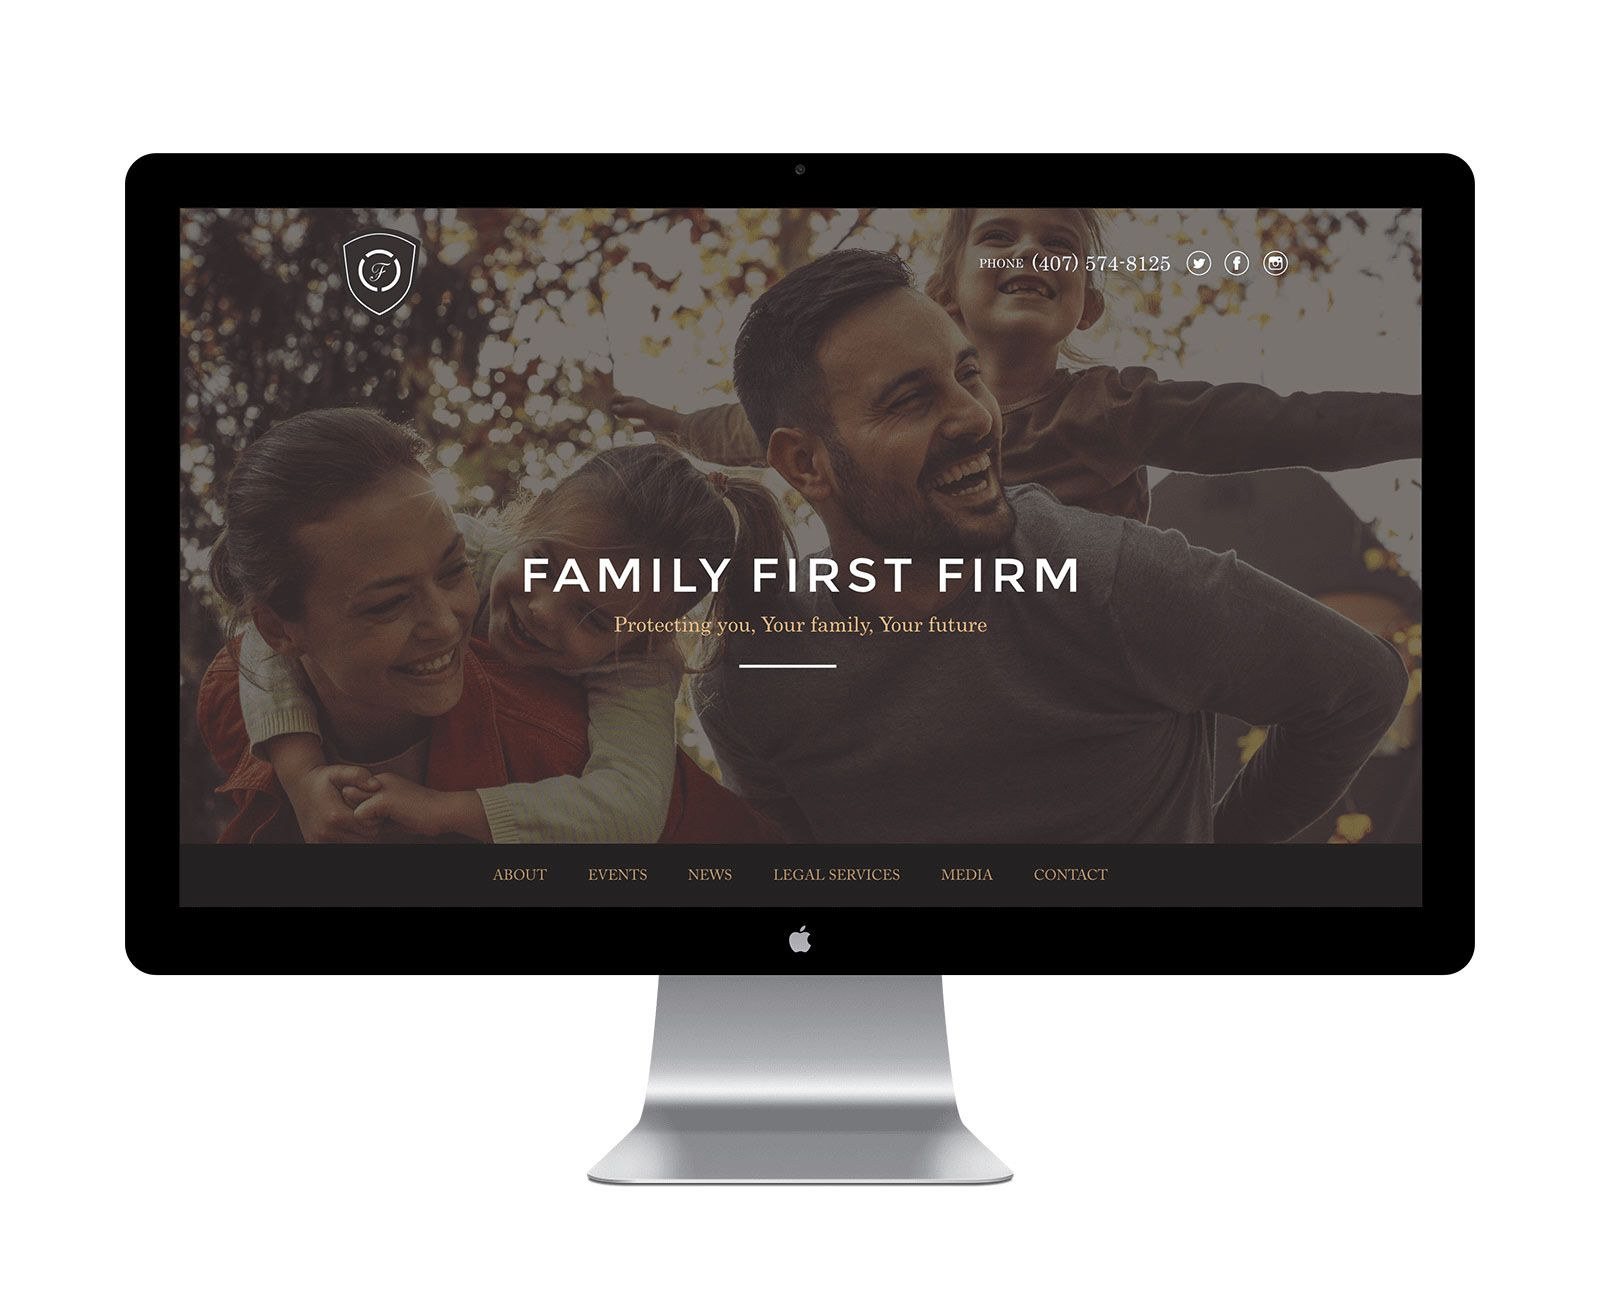 Family First Firm Homepage